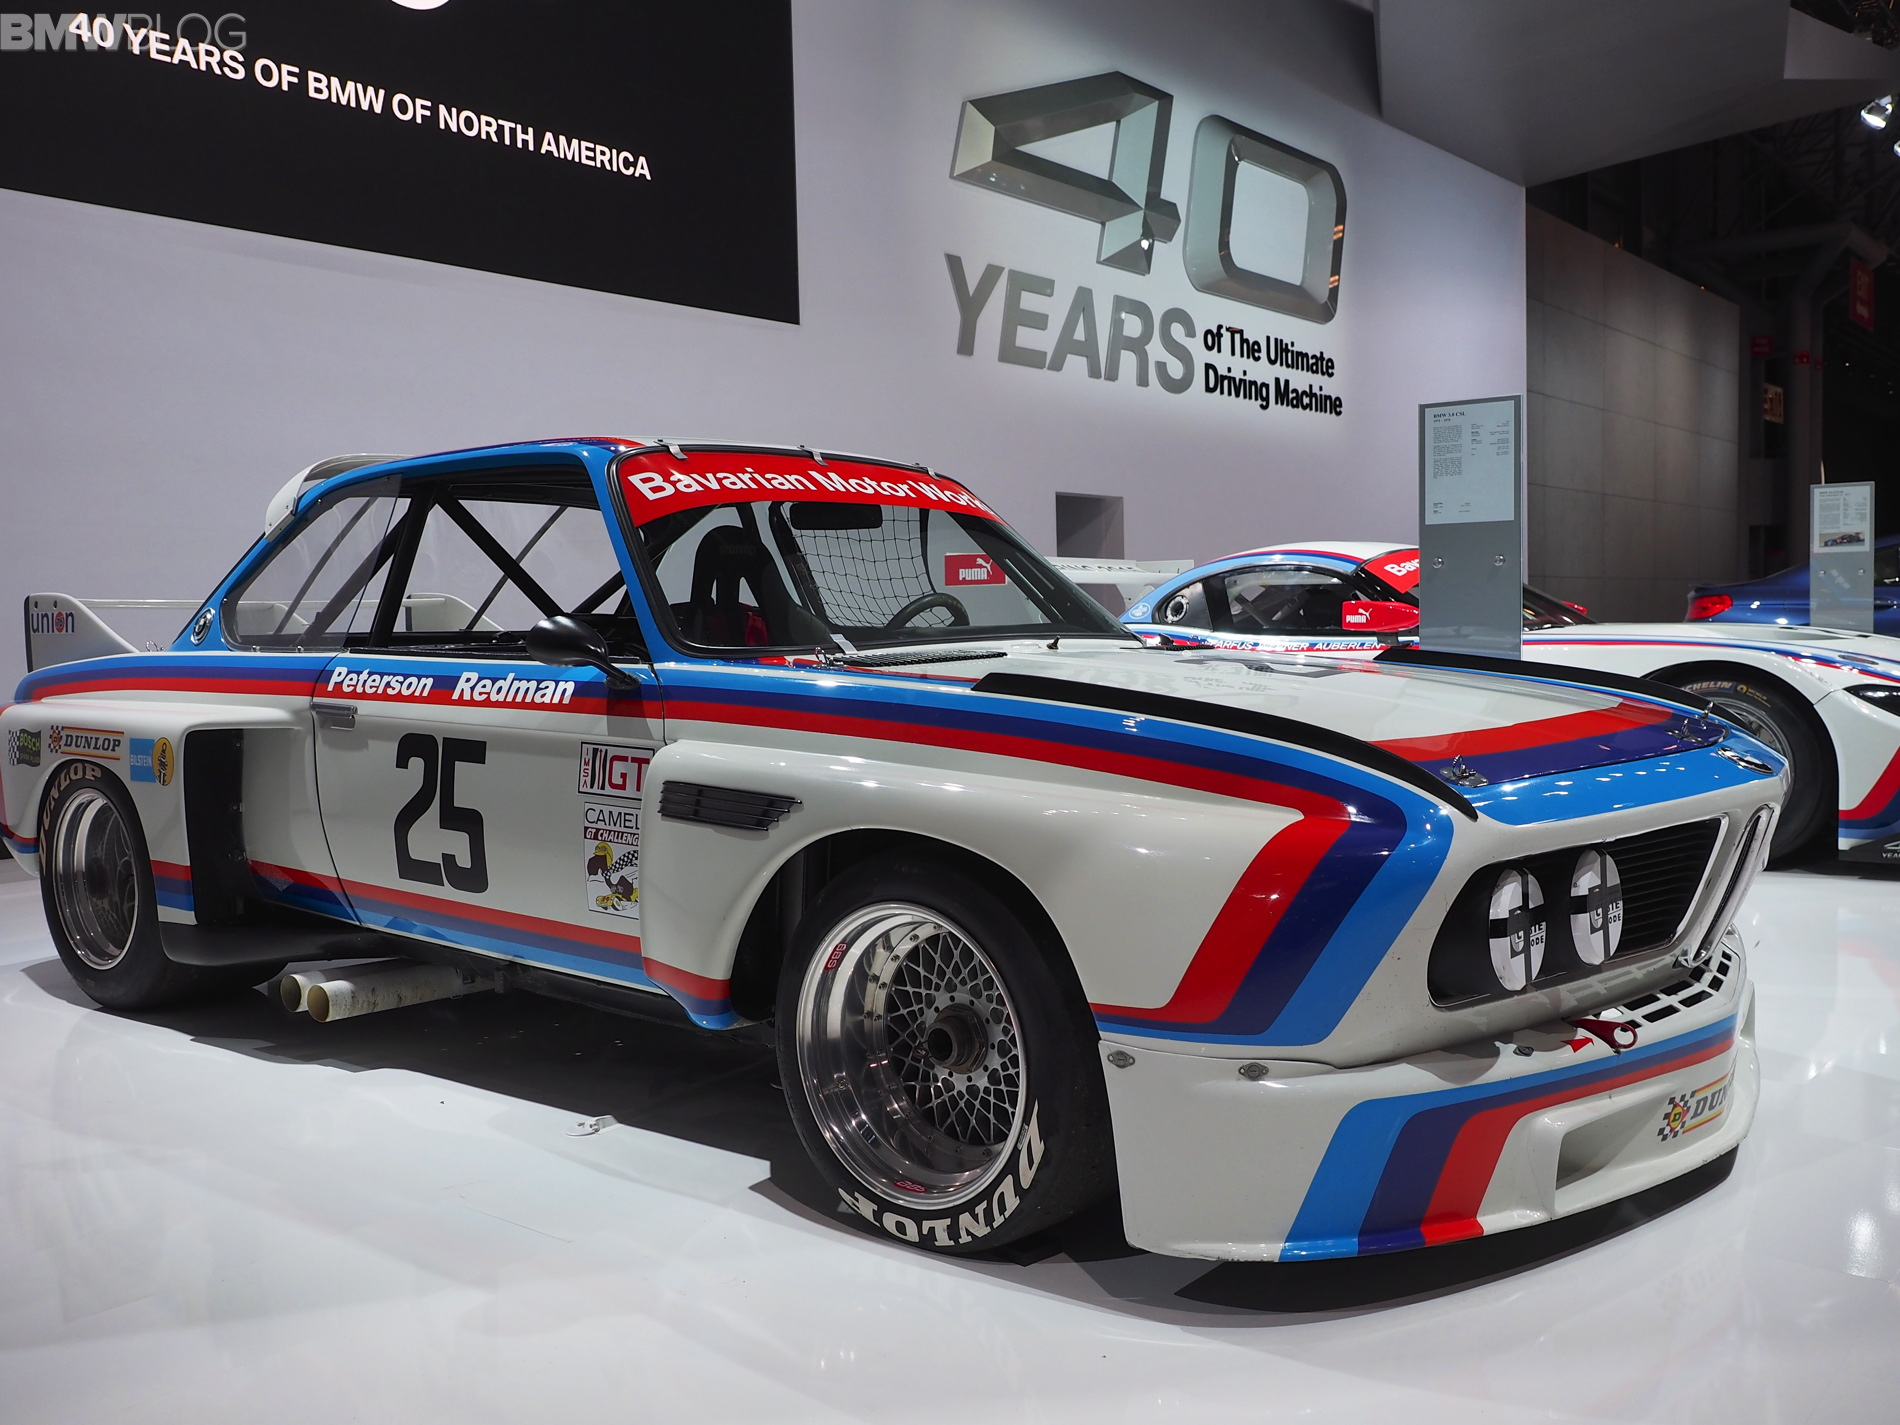 2015 Nyias Imsa Bmw 3 0 Csl Winning Car